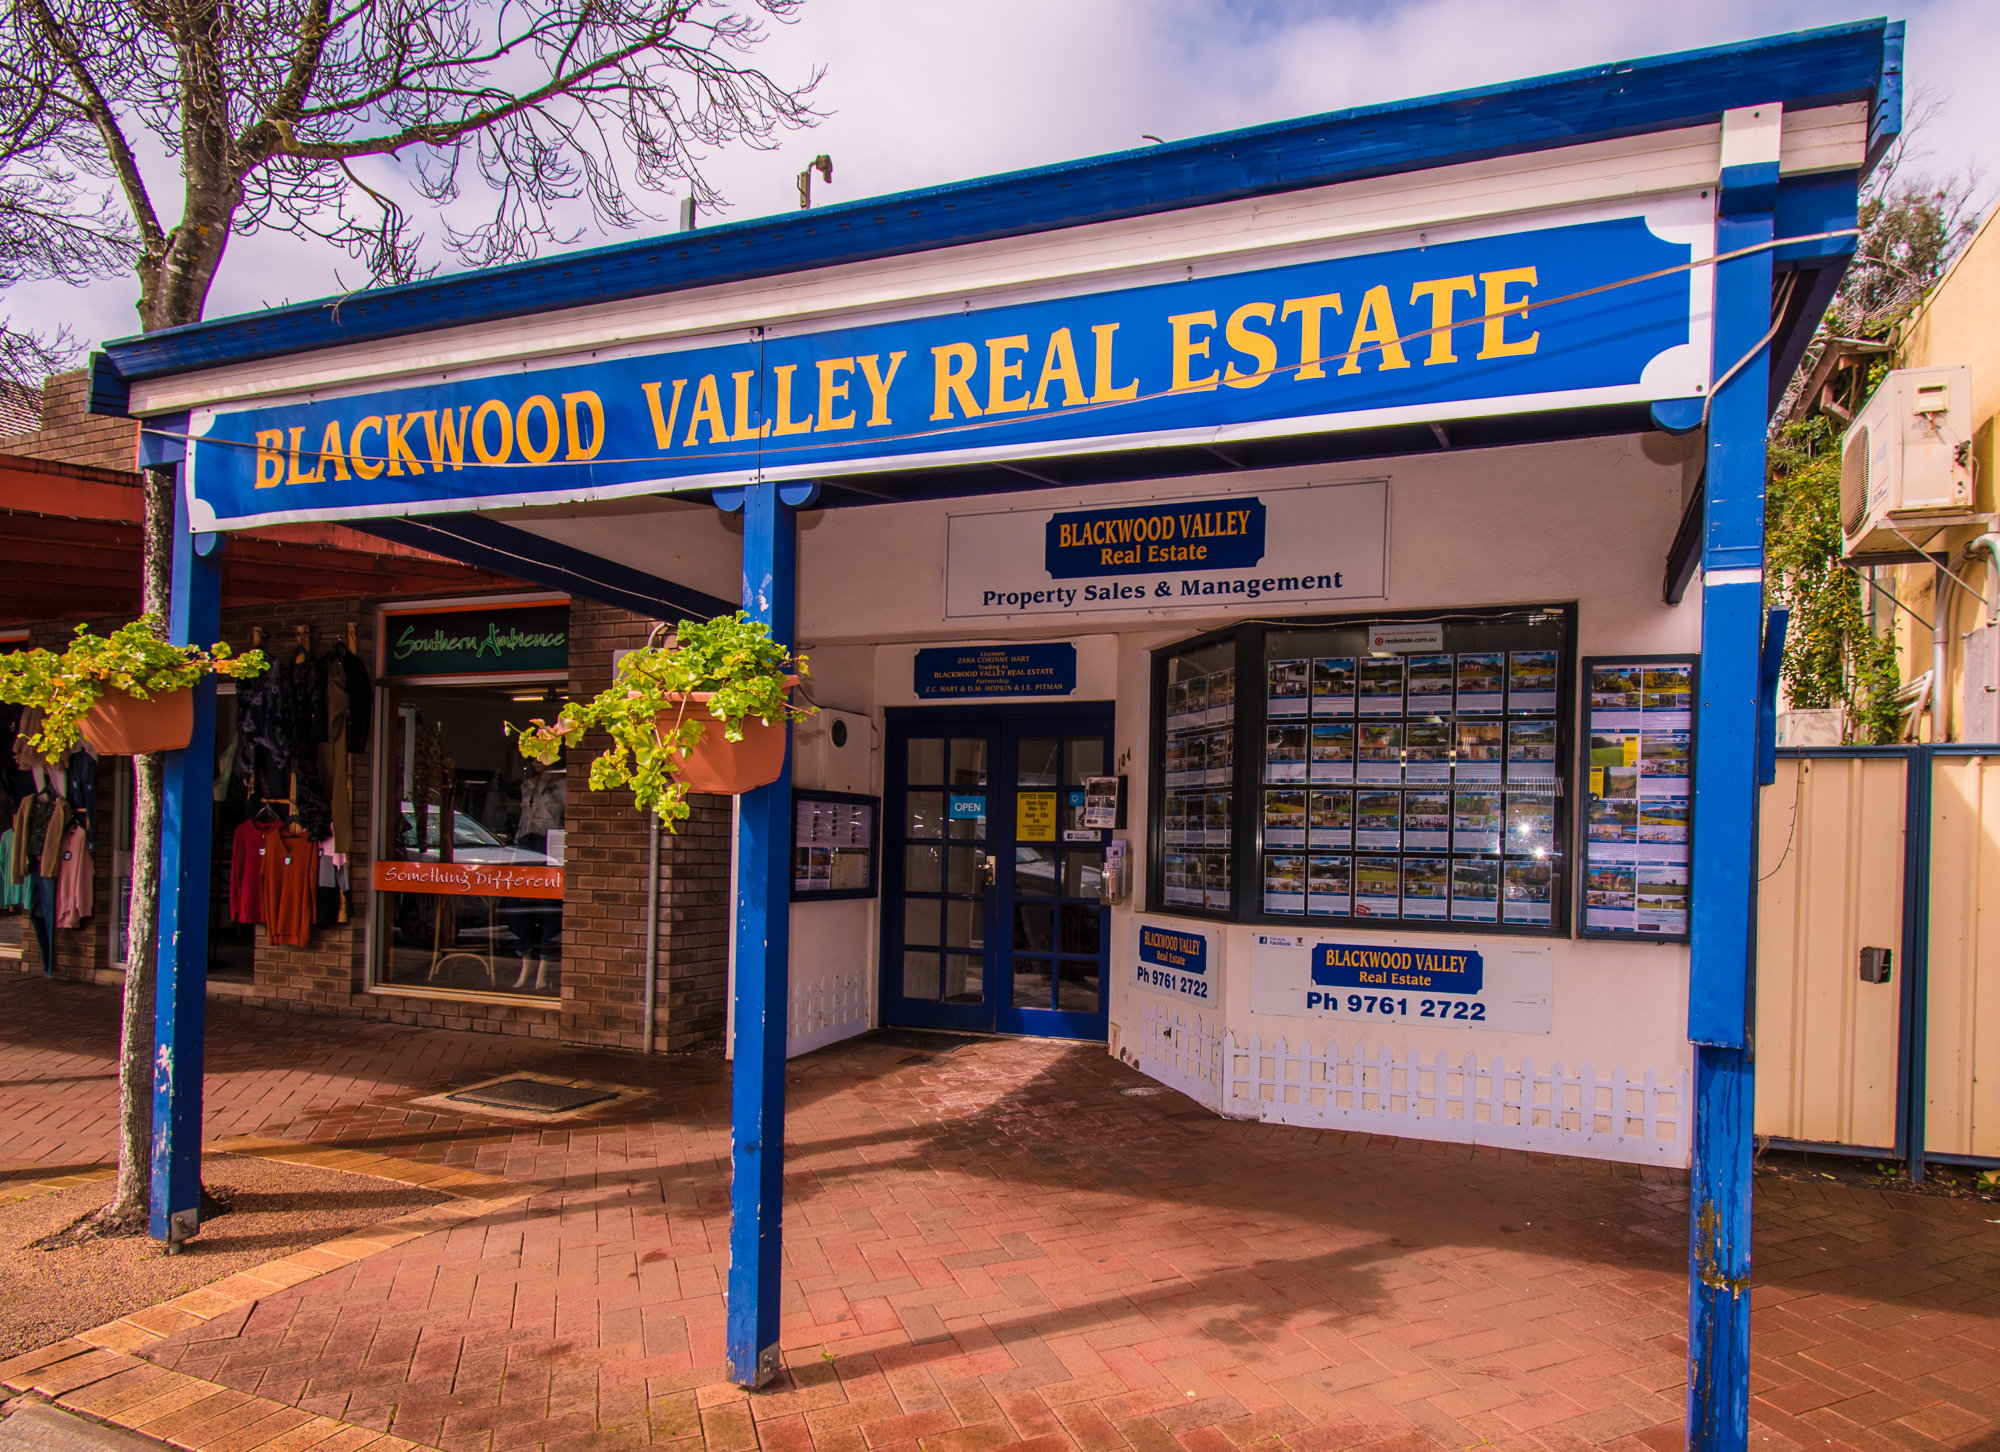 Blackwood Valley Real Estate Bridgetown